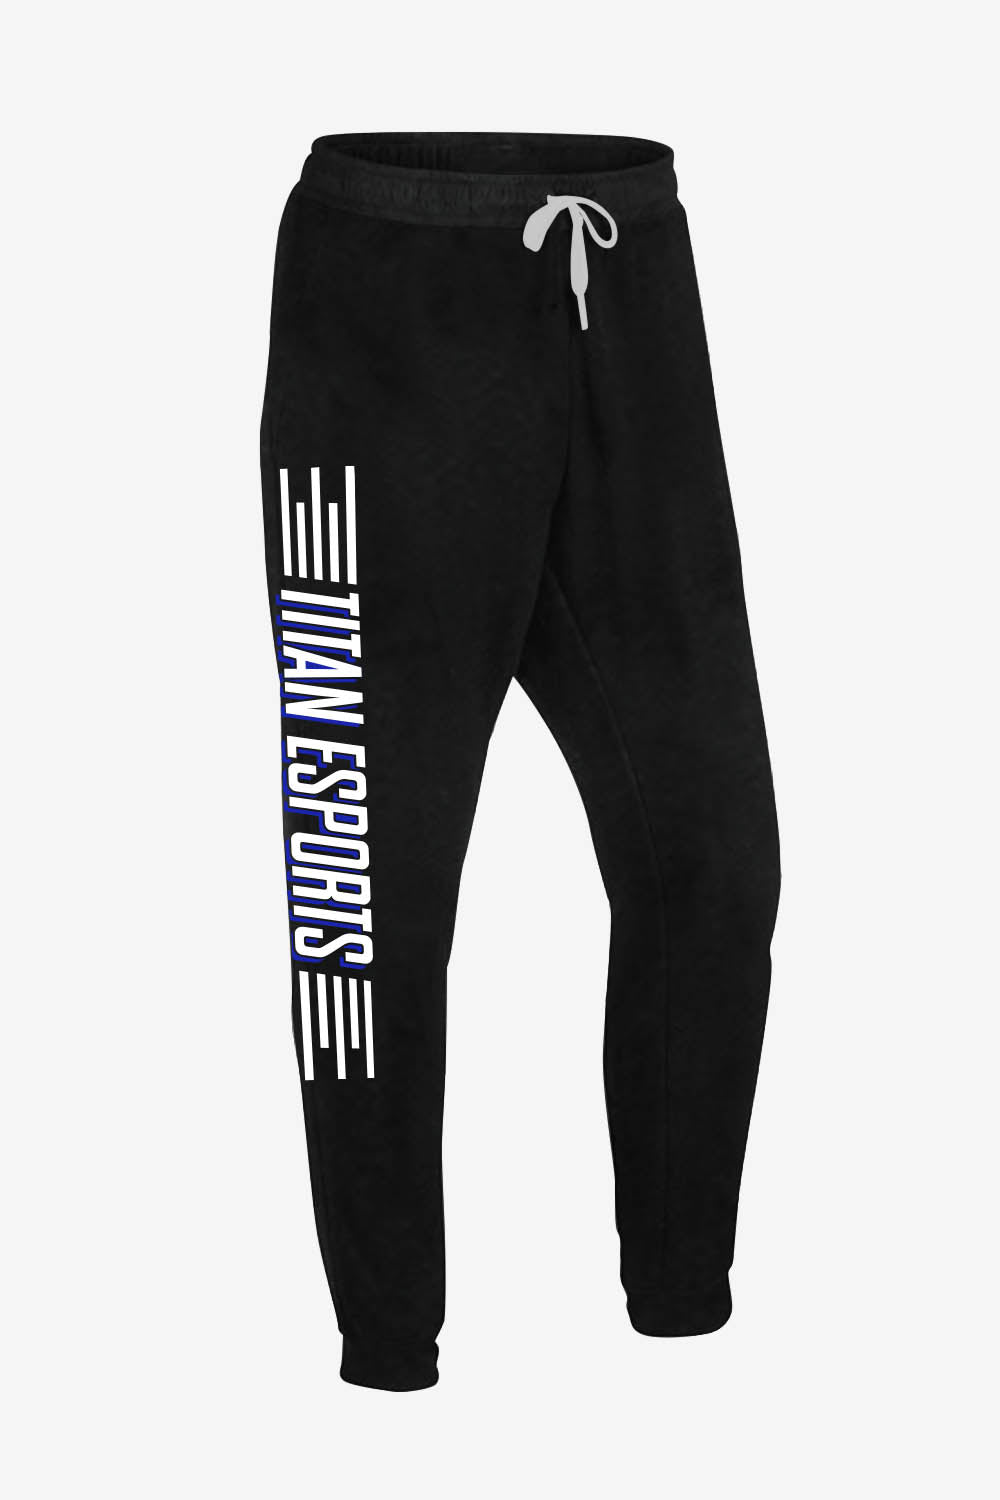 Thayer Central HS Black Joggers